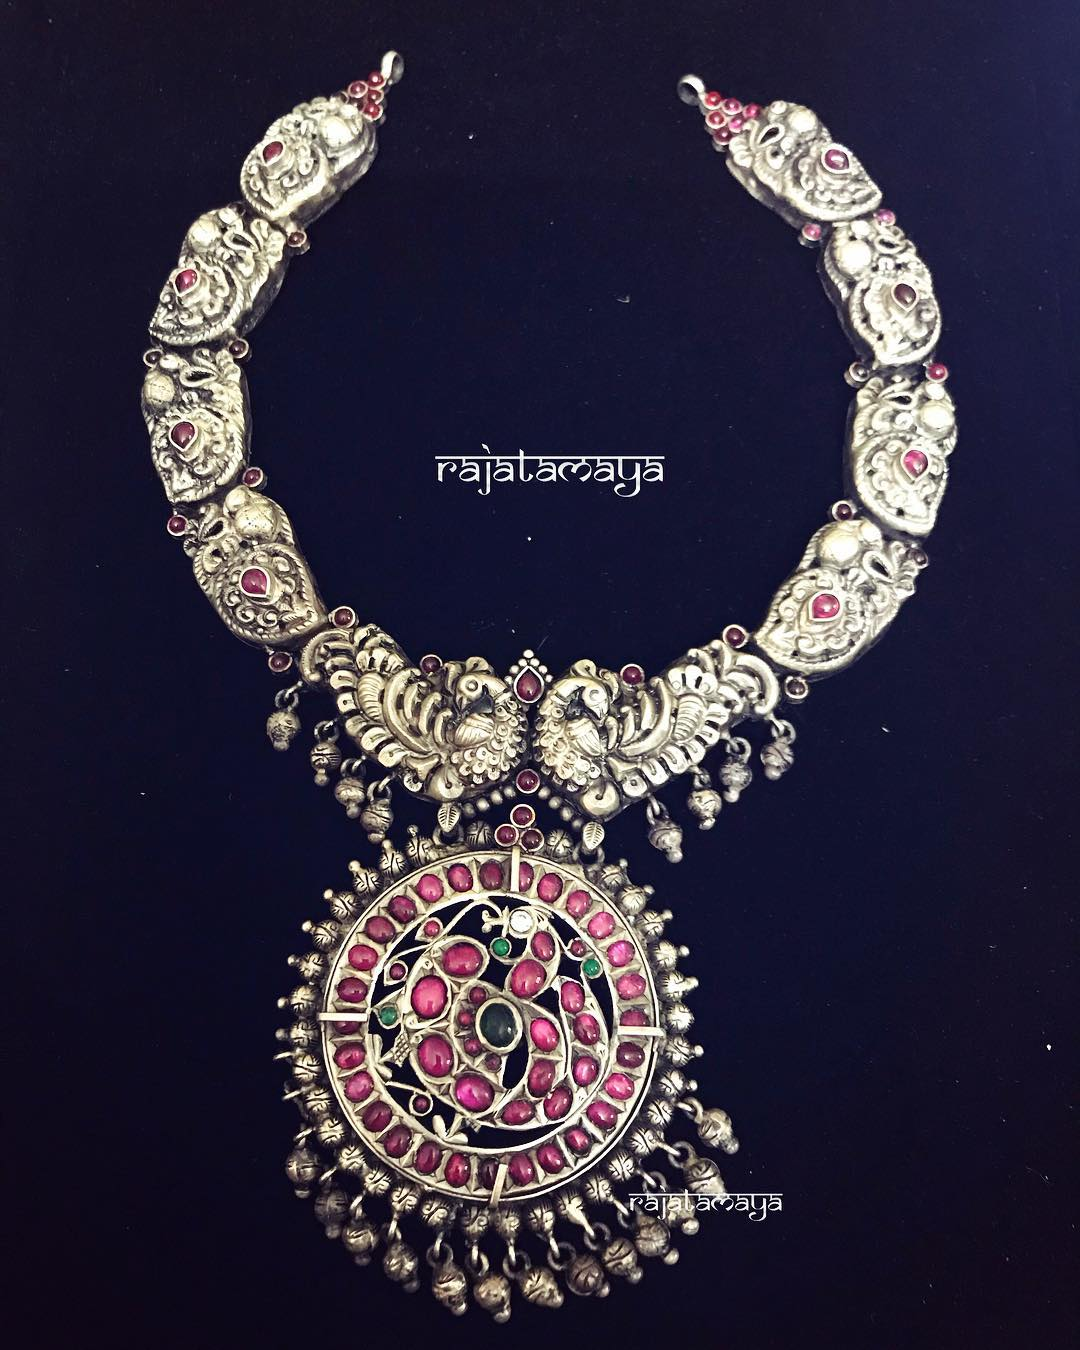 Classy Silver Necklace From Rajatamaya